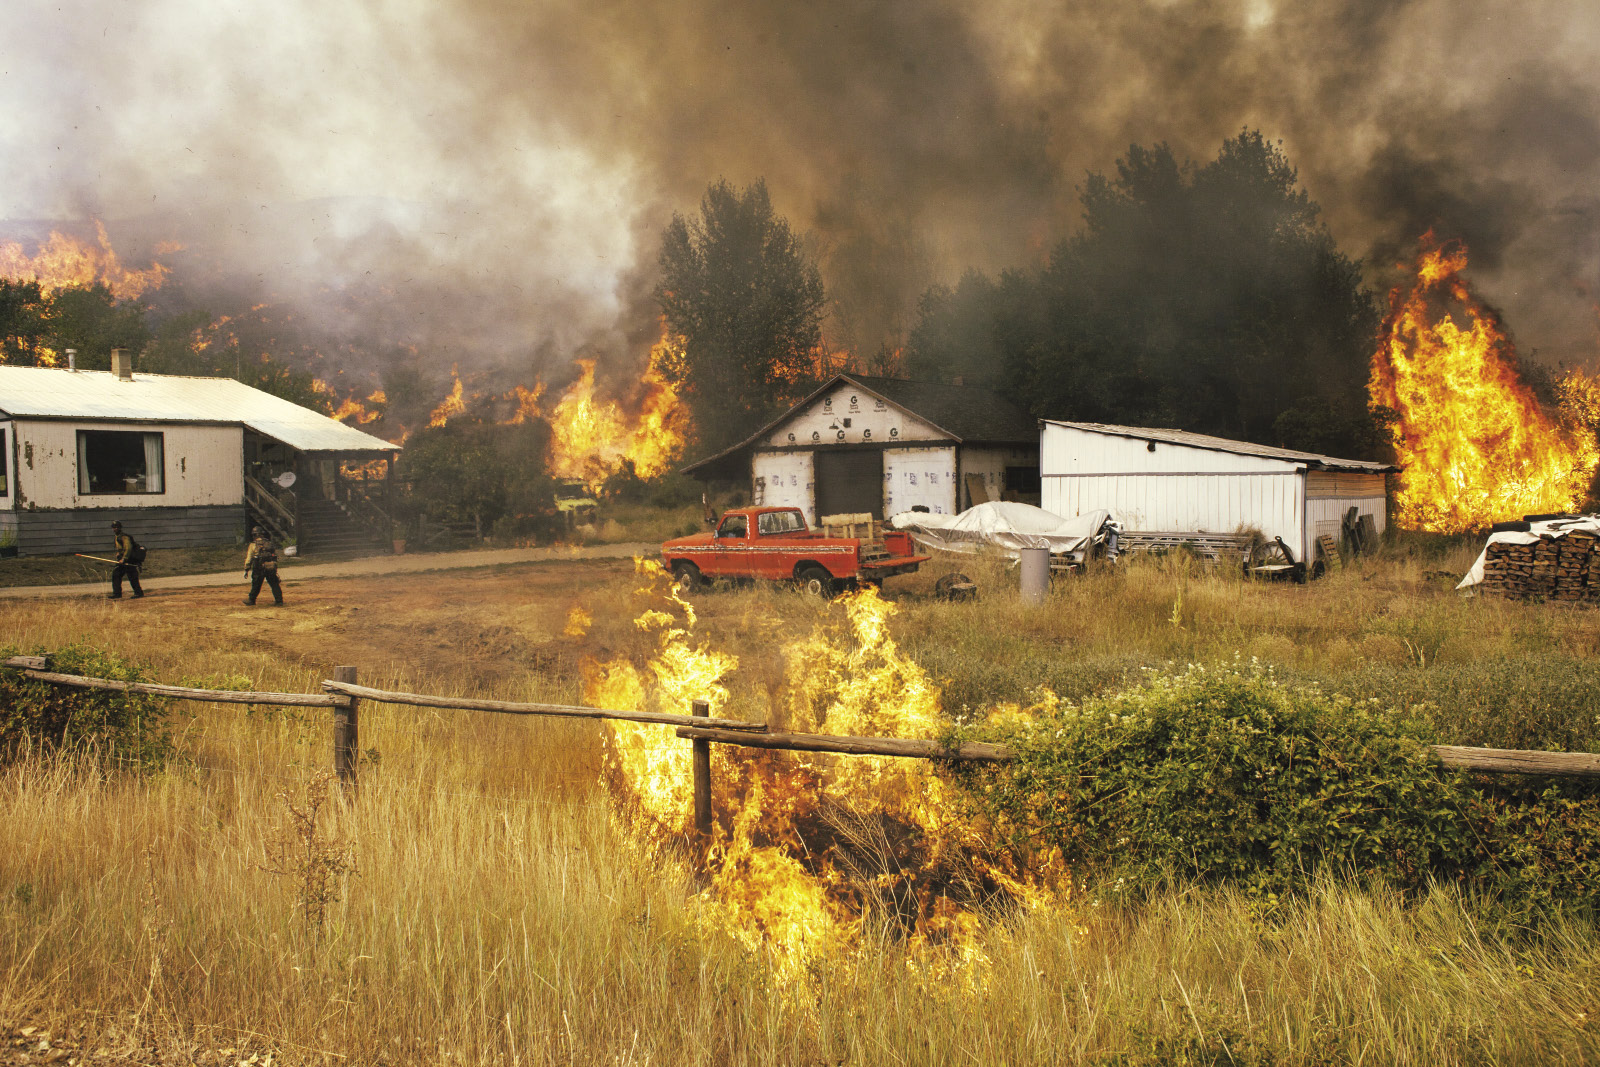 Firefighters attempt to protect a home and outbuilding from a wildfire in Washington state.